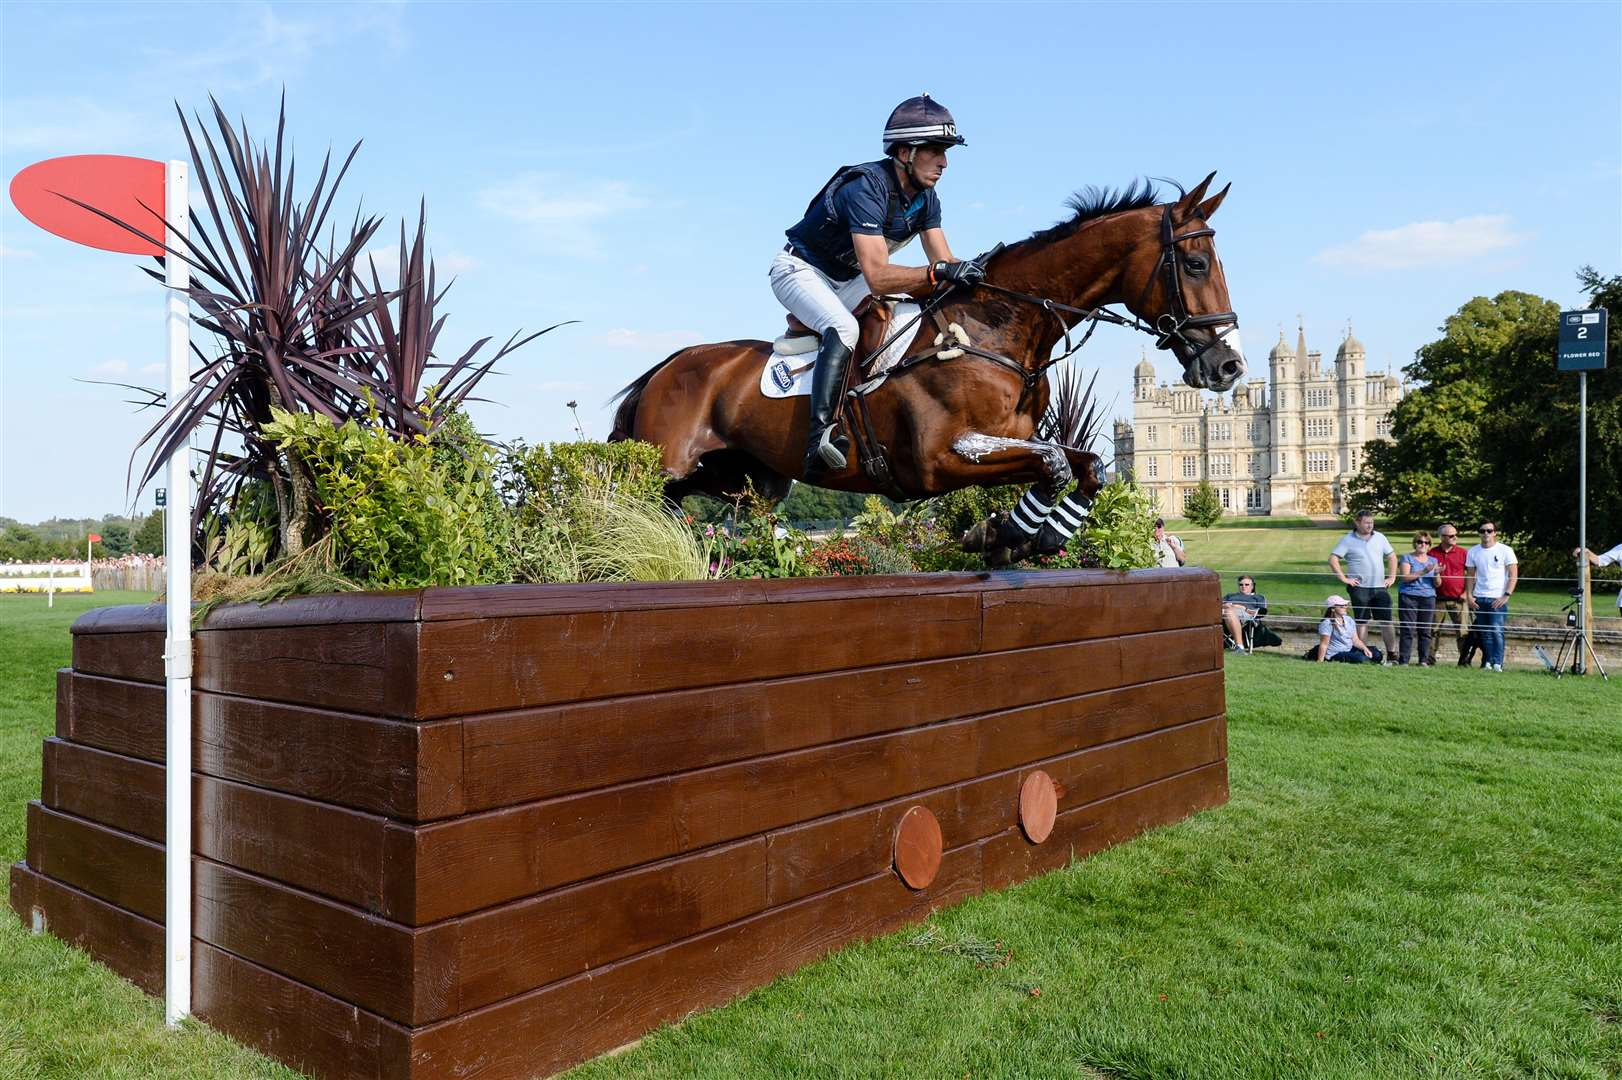 Tim Price (NZL) riding RINGWOOD SKY BOY during the cross country phase of the Land Rover Burghley Horse Trials, Photo: PETER NIXON (3915442)